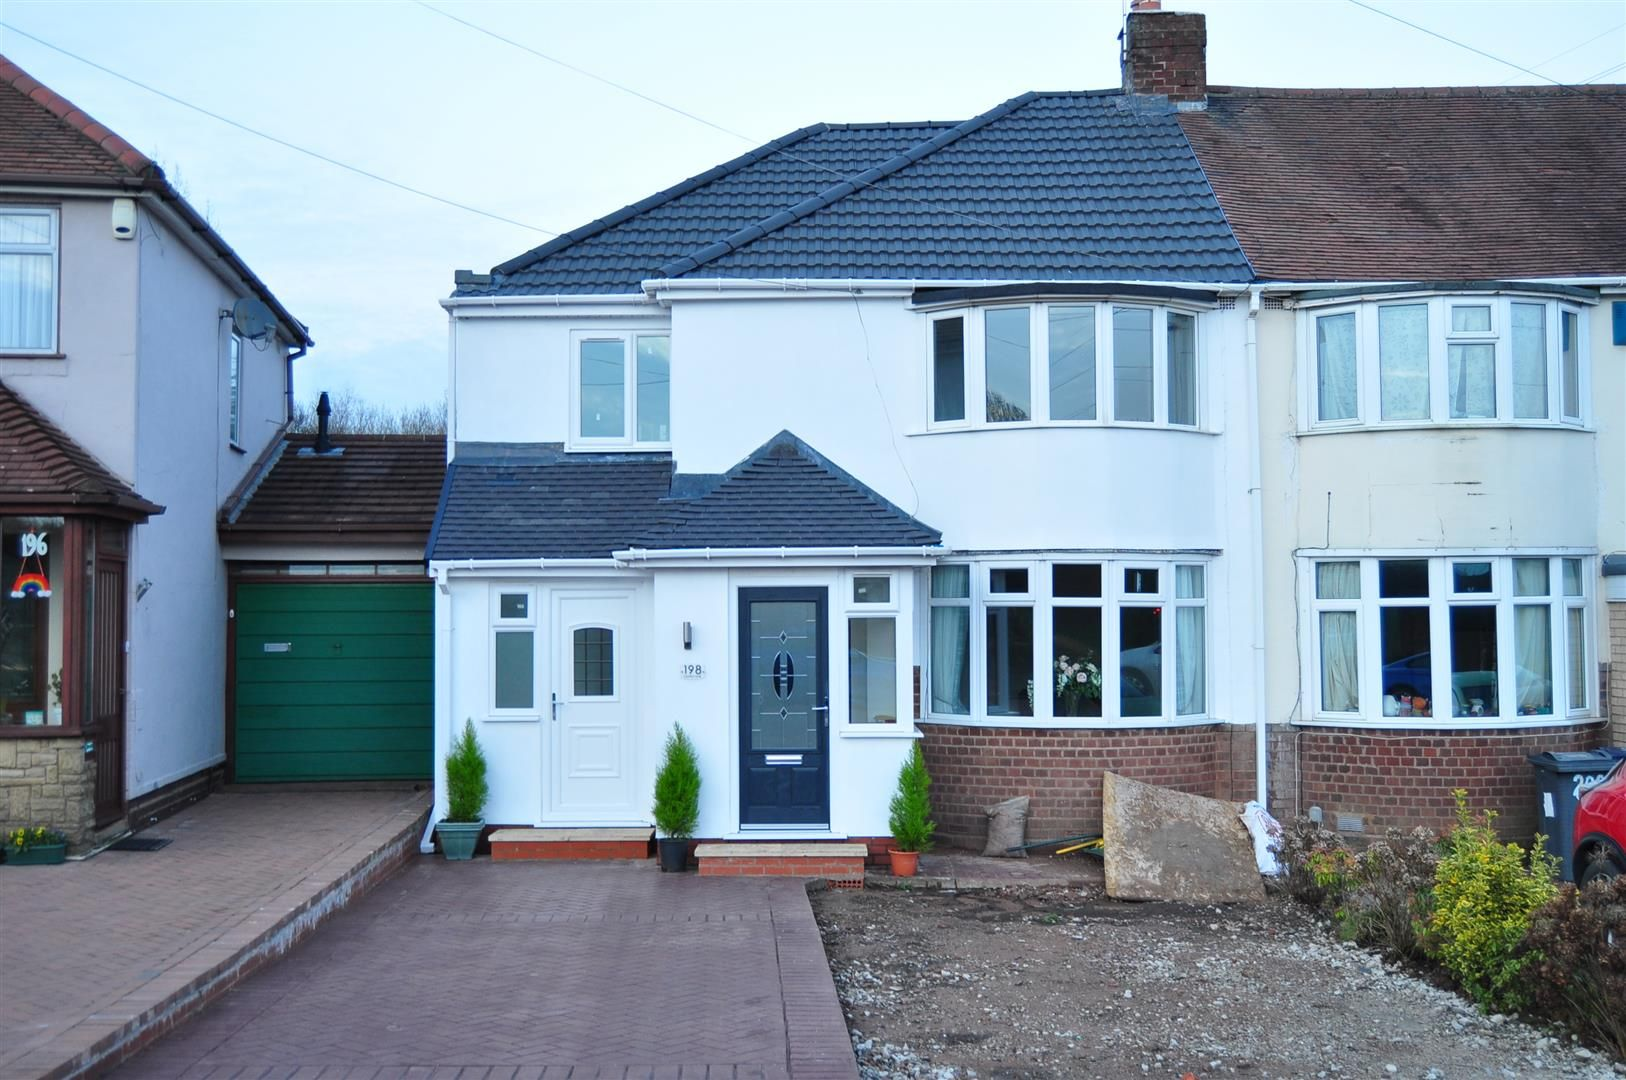 3 bed house for sale  - Property Image 27